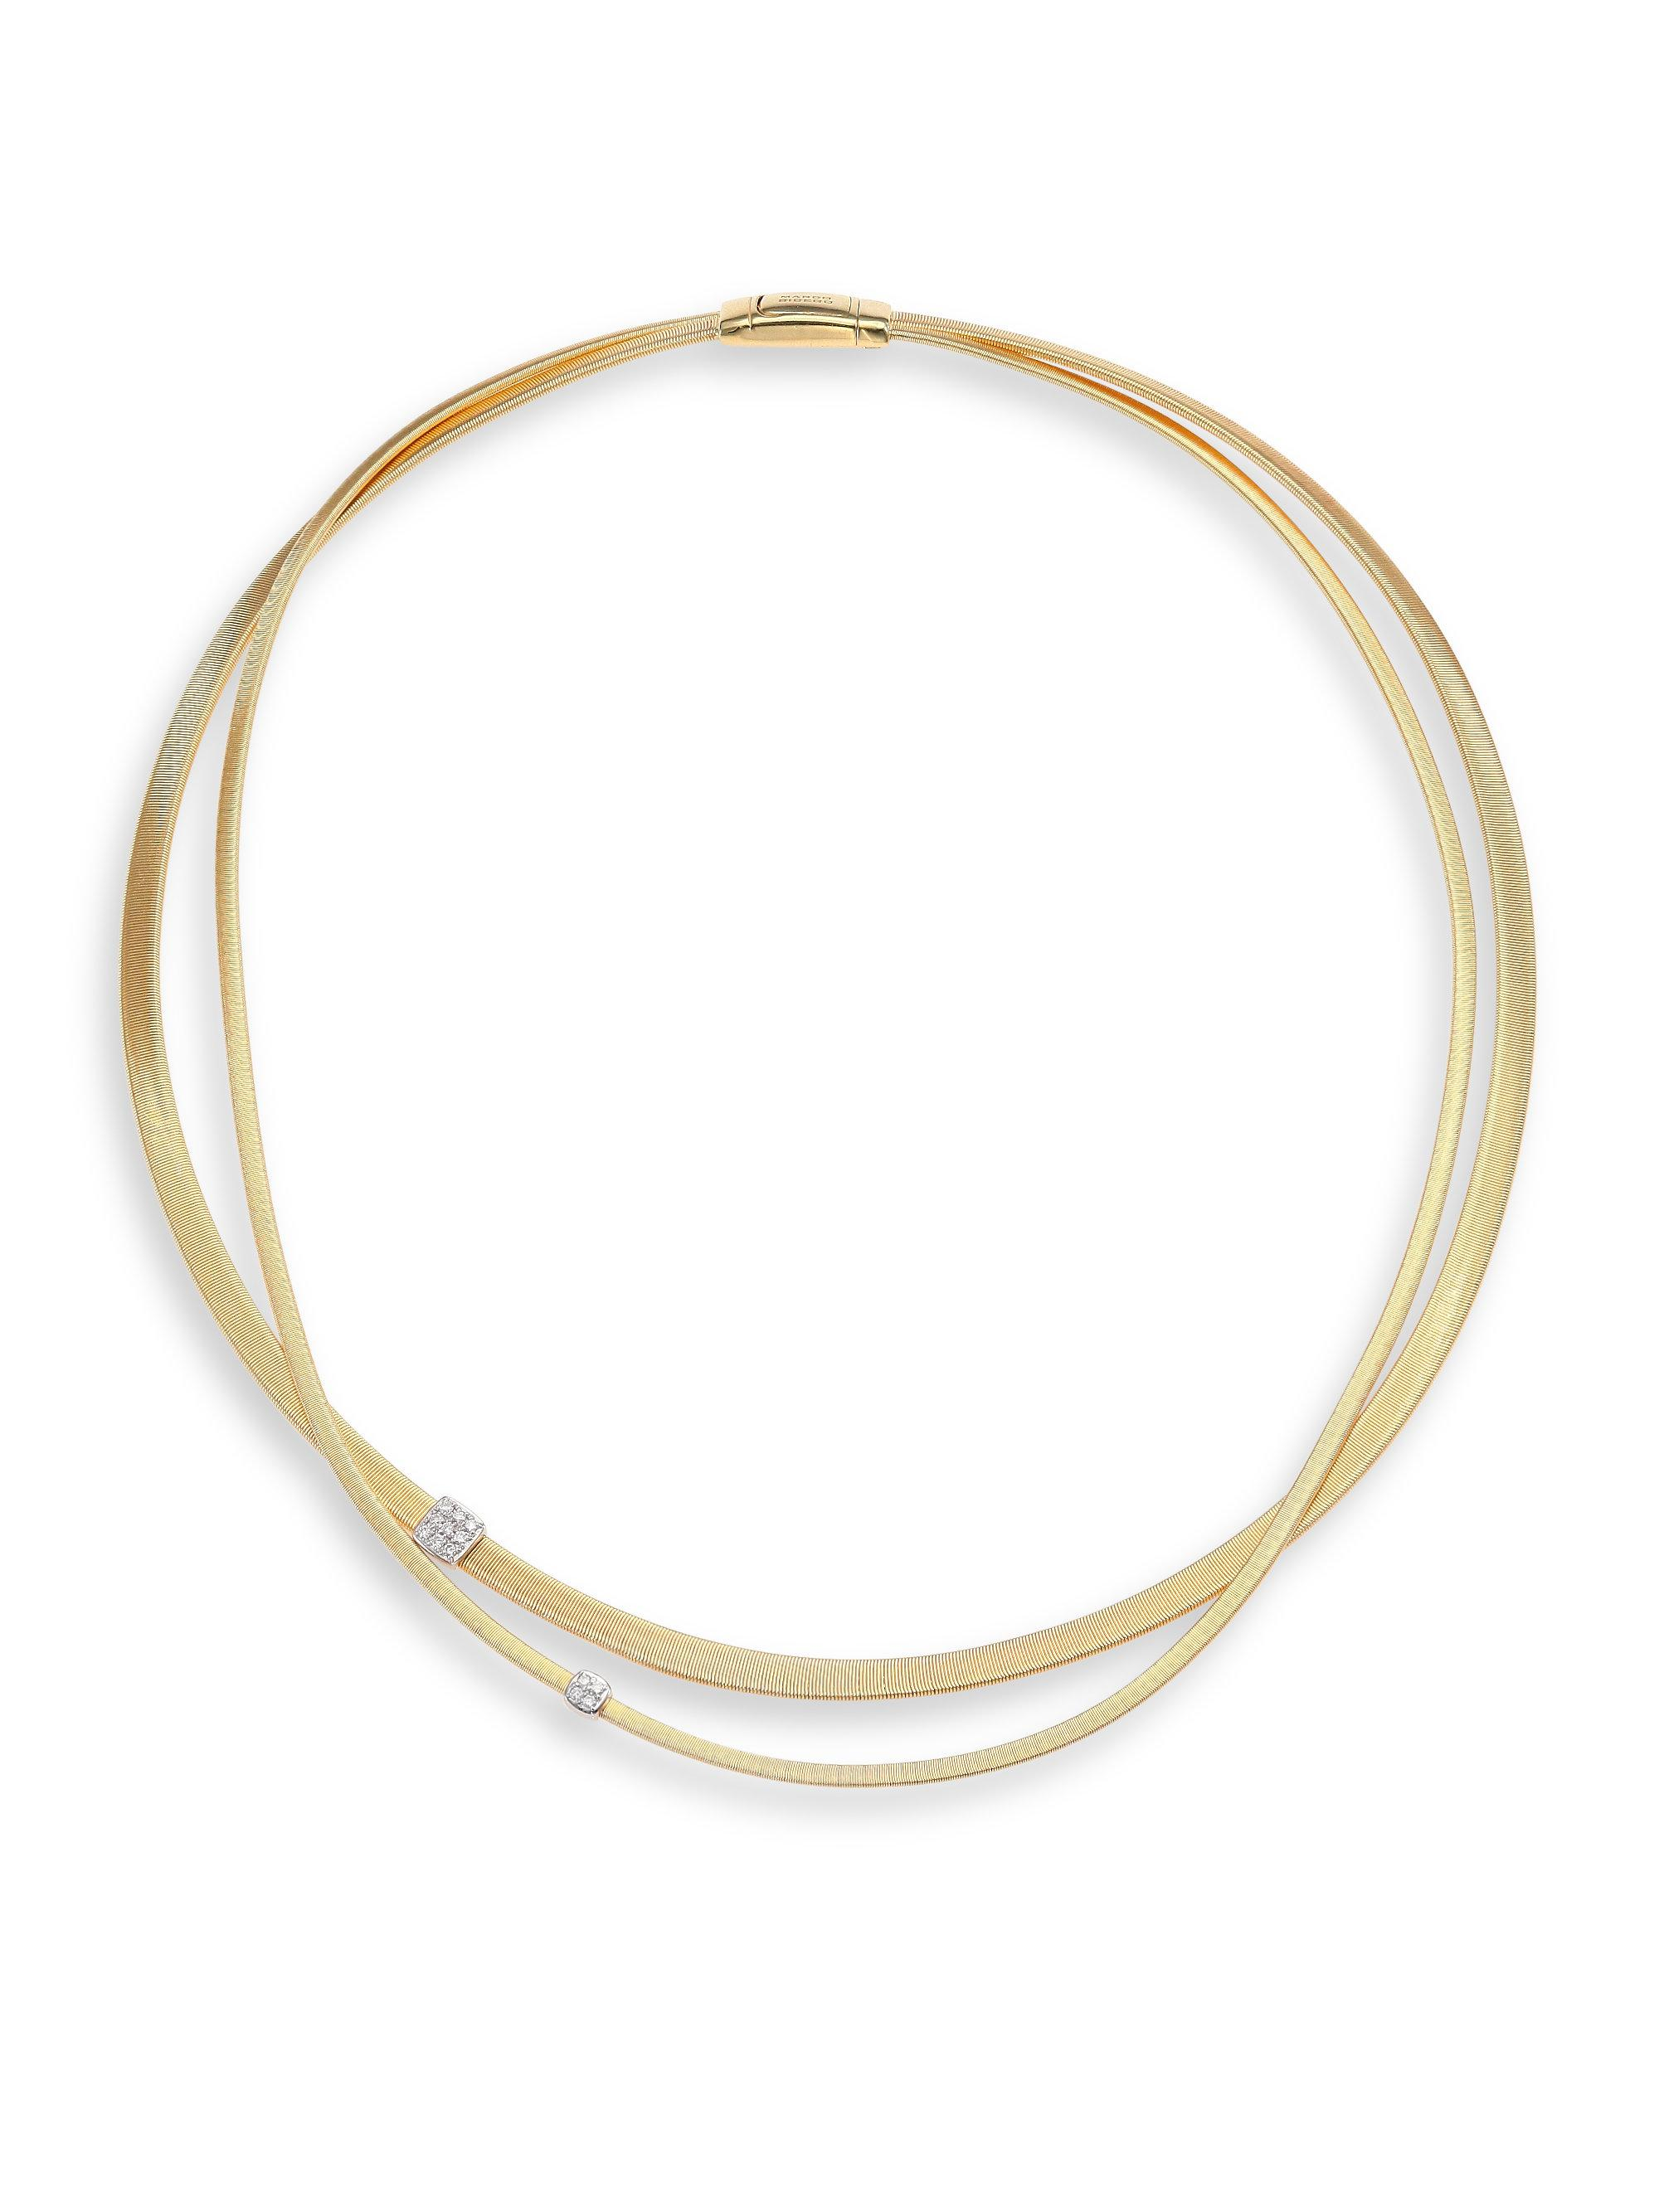 Marco Bicego Masai 18K Two-Strand Necklace 0d1v7pQQA